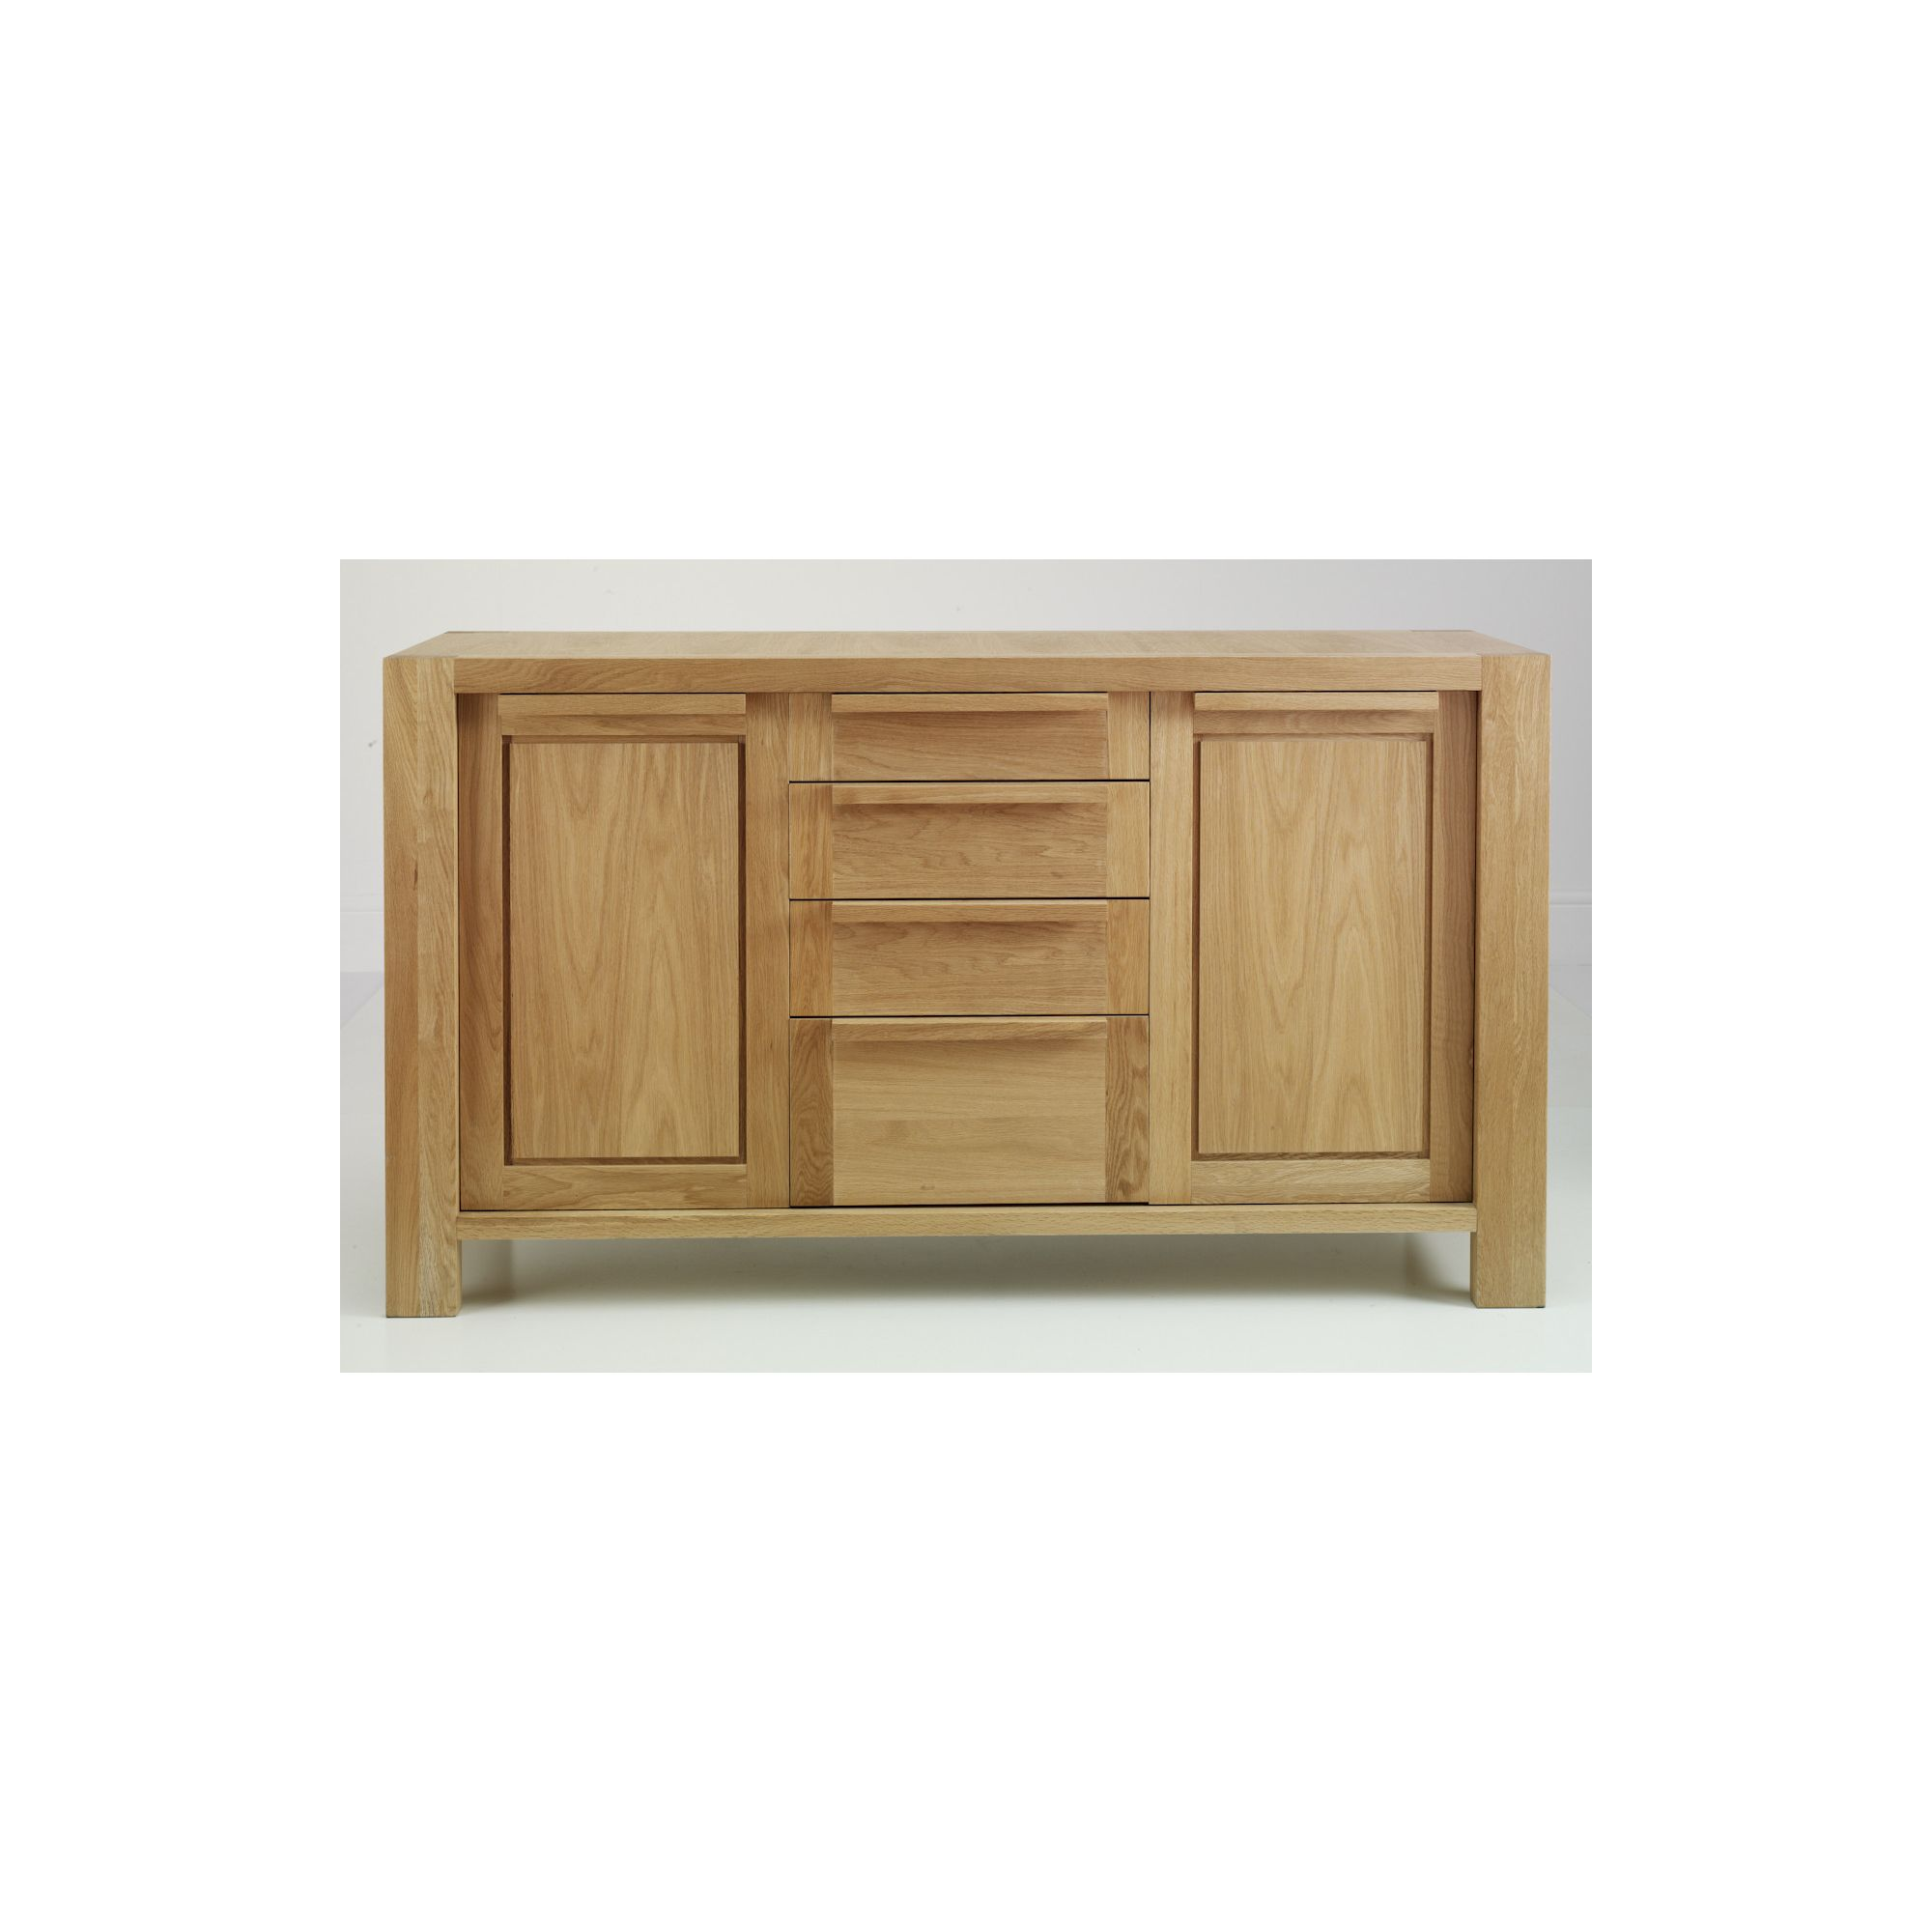 Originals Xanadu Dining Wide Sideboard at Tesco Direct